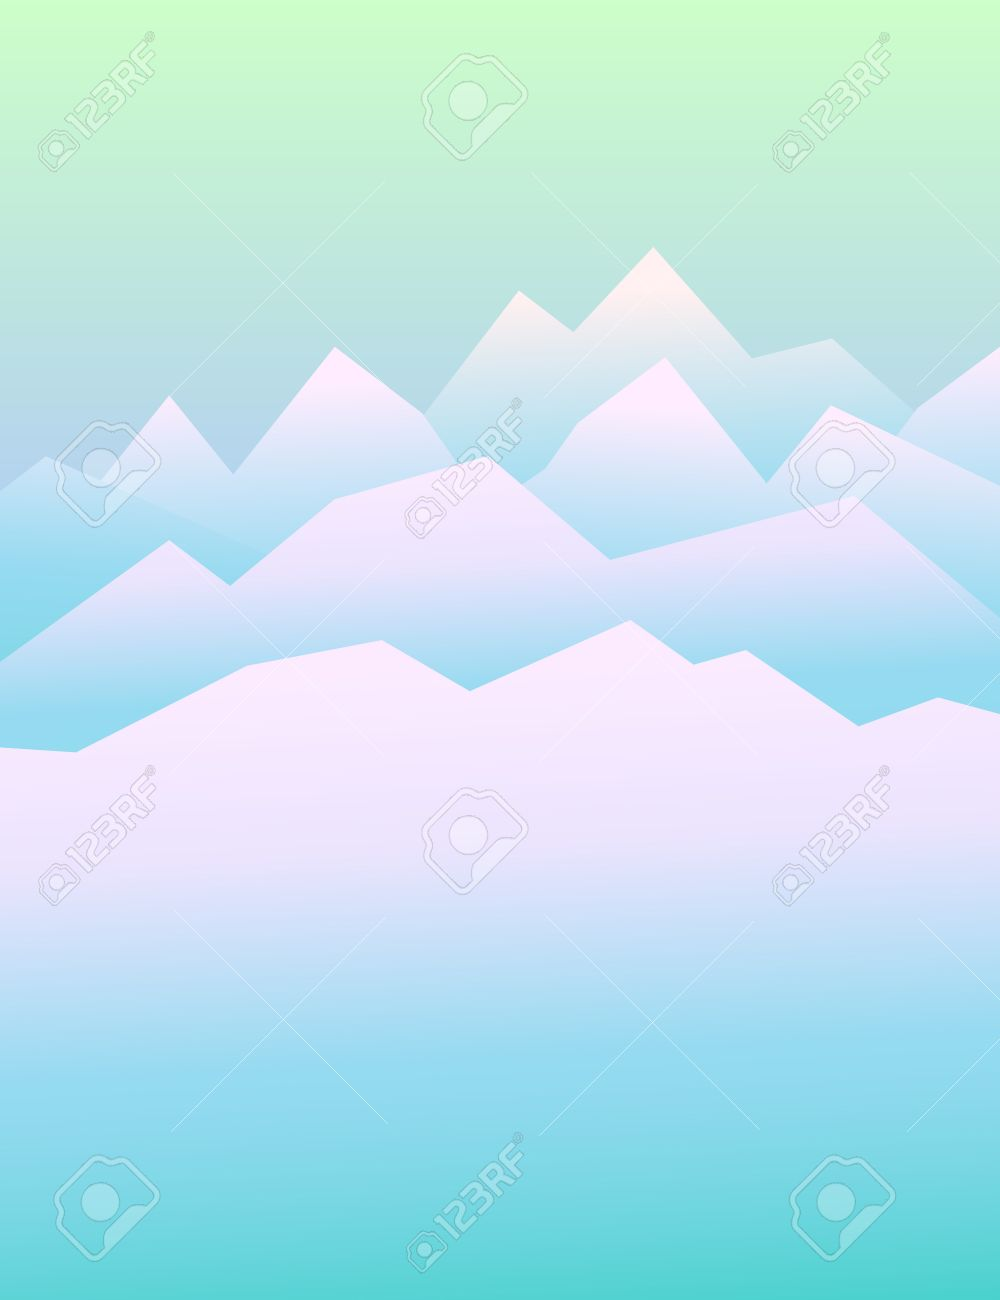 peaceful mountains in winter highlands landscape vector peaceful mountains in winter highlands landscape vector background for booklet flyer outdoor